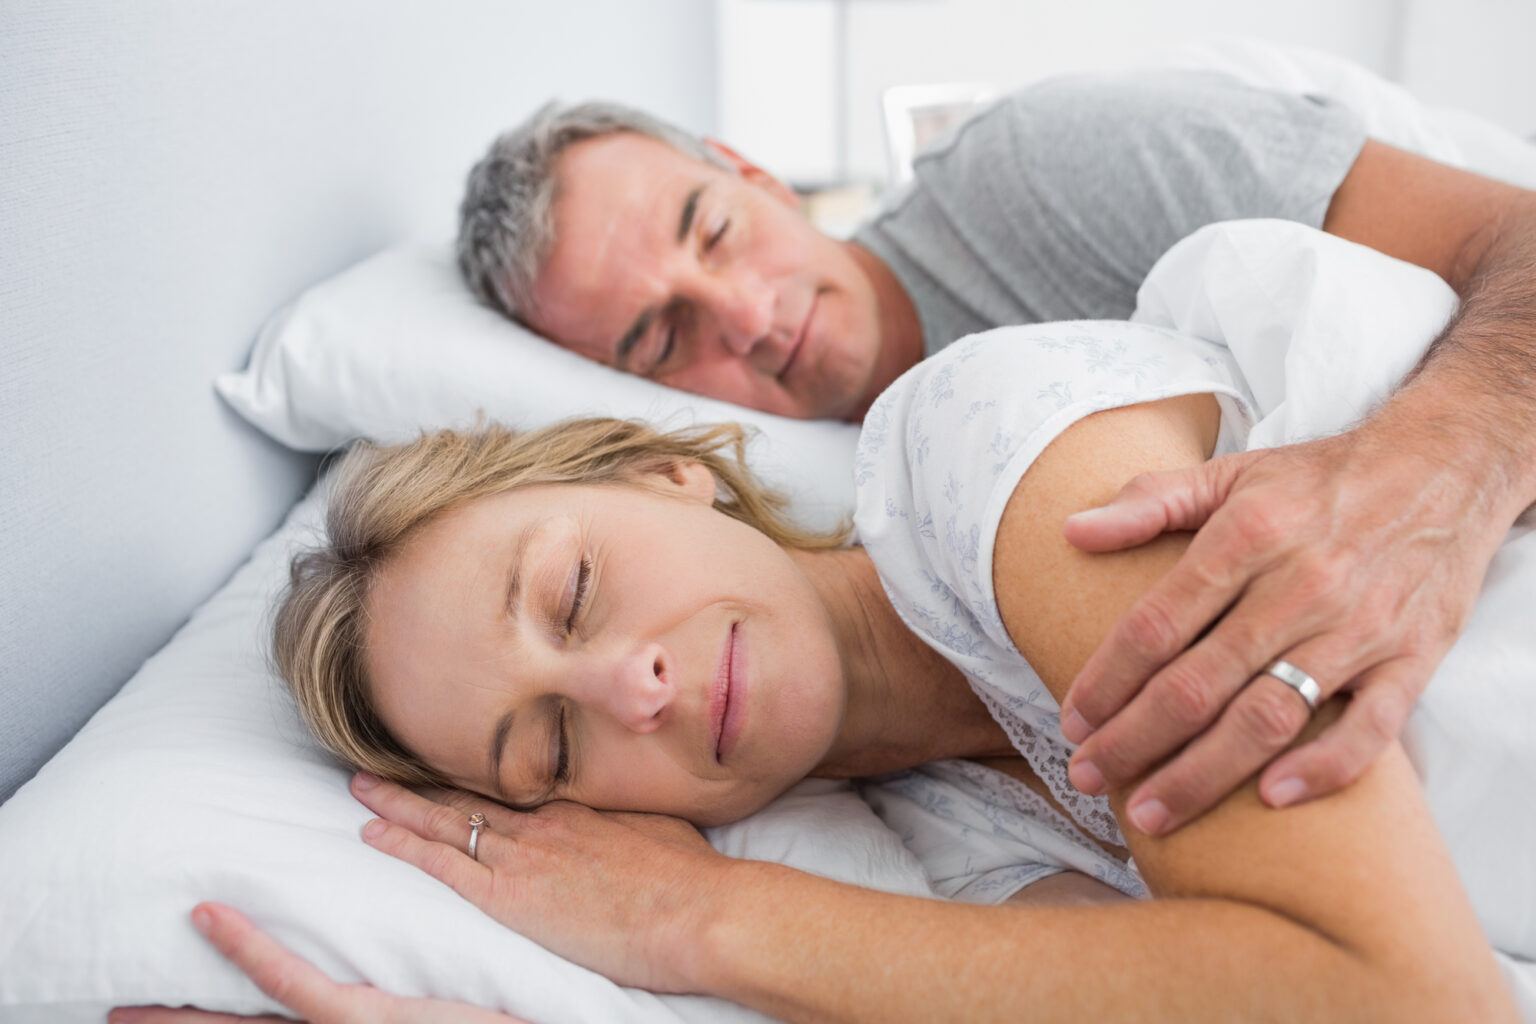 For Sleep Apnea Patients: 5 Tips to Achieve A Good Night's Sleep